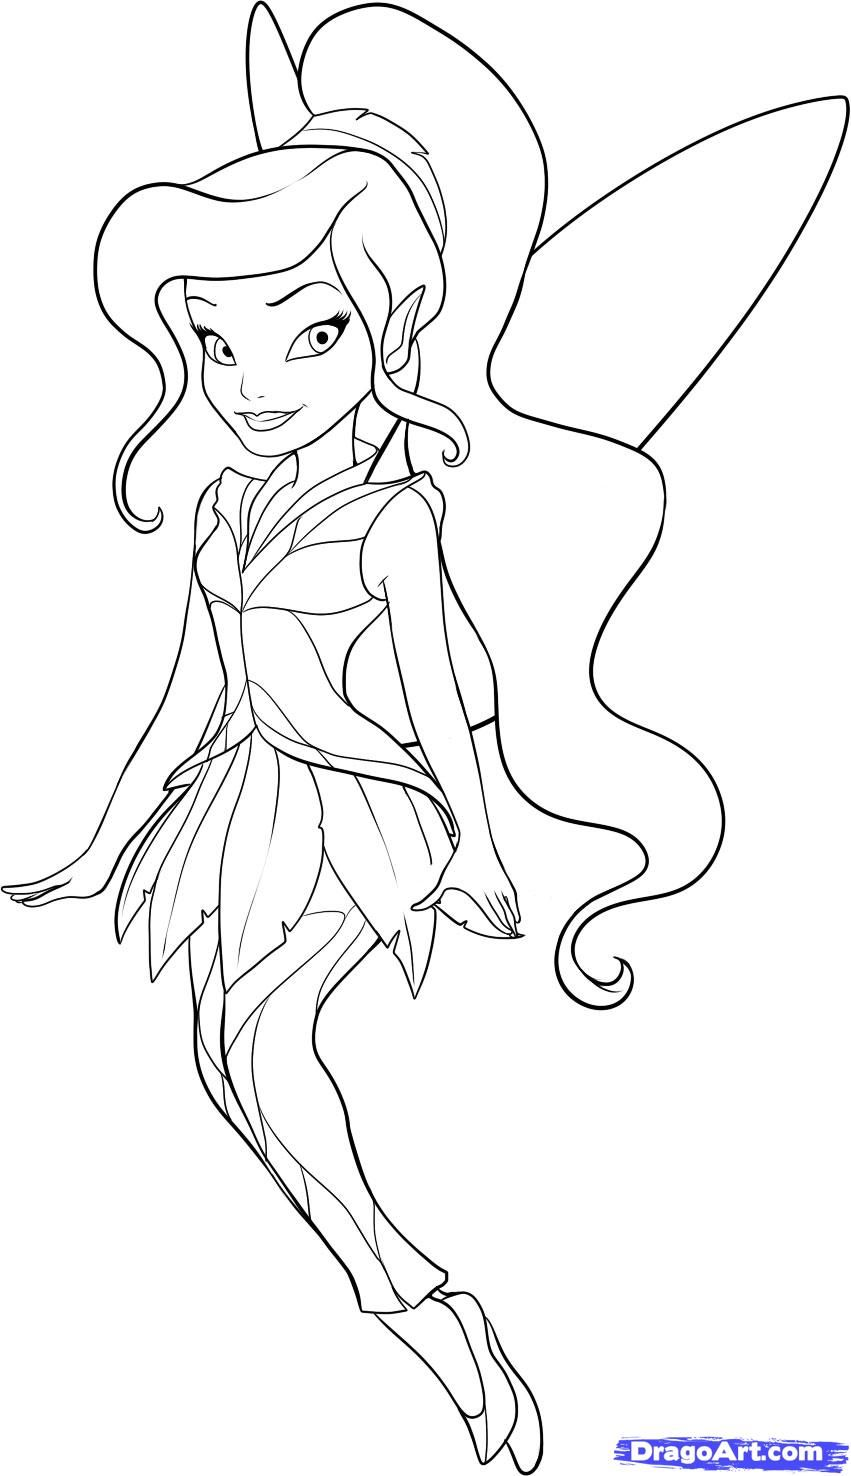 Vidia coloring pages